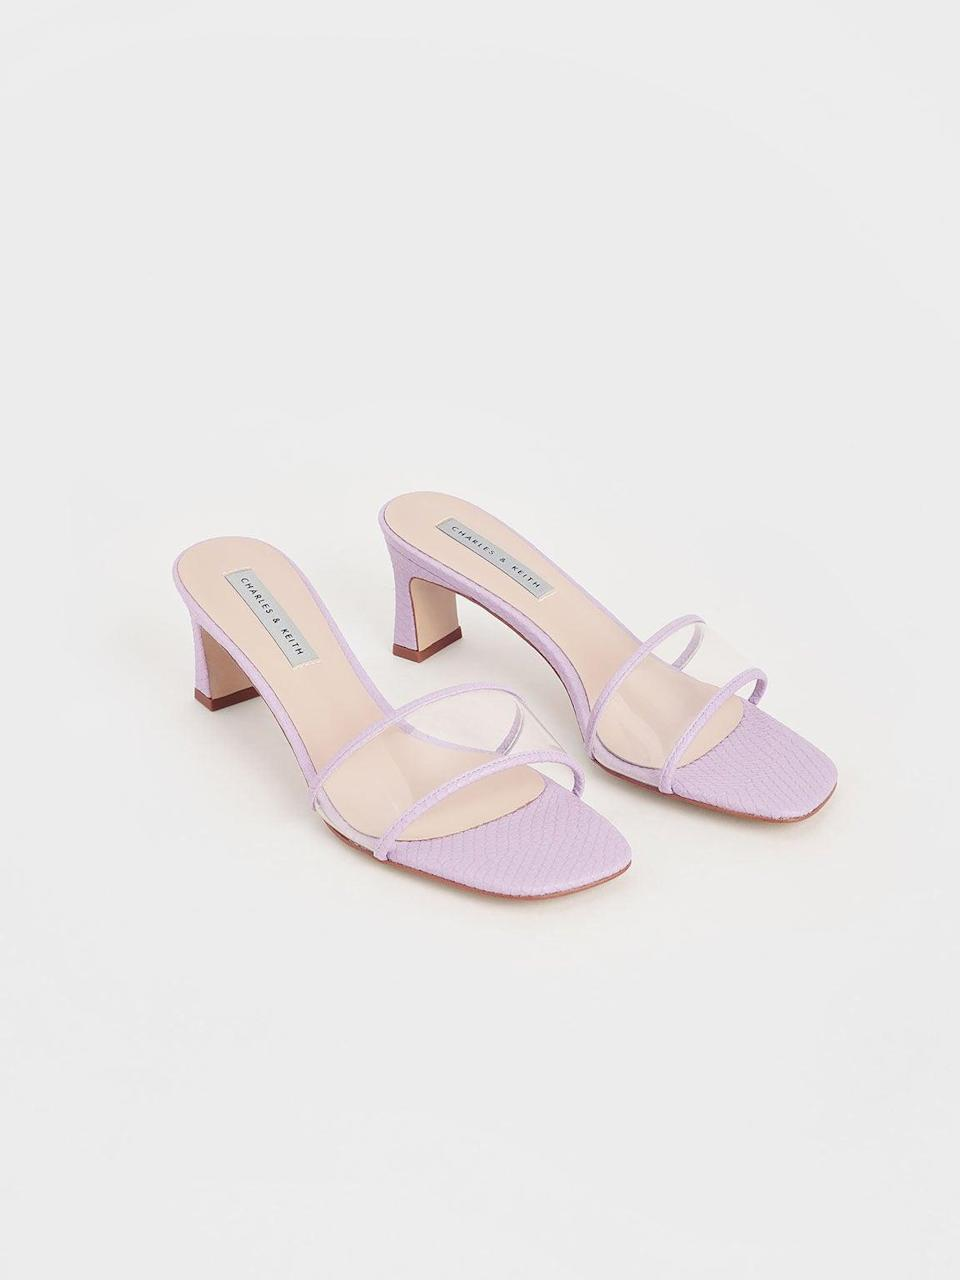 """<br><br><strong>Charles & Keith</strong> Snake Print Clear Strap Mules, $, available at <a href=""""https://go.skimresources.com/?id=30283X879131&url=https%3A%2F%2Fwww.charleskeith.com%2Fus%2Fshoes%2FCK1-60050919_AP.PP.html"""" rel=""""nofollow noopener"""" target=""""_blank"""" data-ylk=""""slk:Charles & Keith"""" class=""""link rapid-noclick-resp"""">Charles & Keith</a>"""